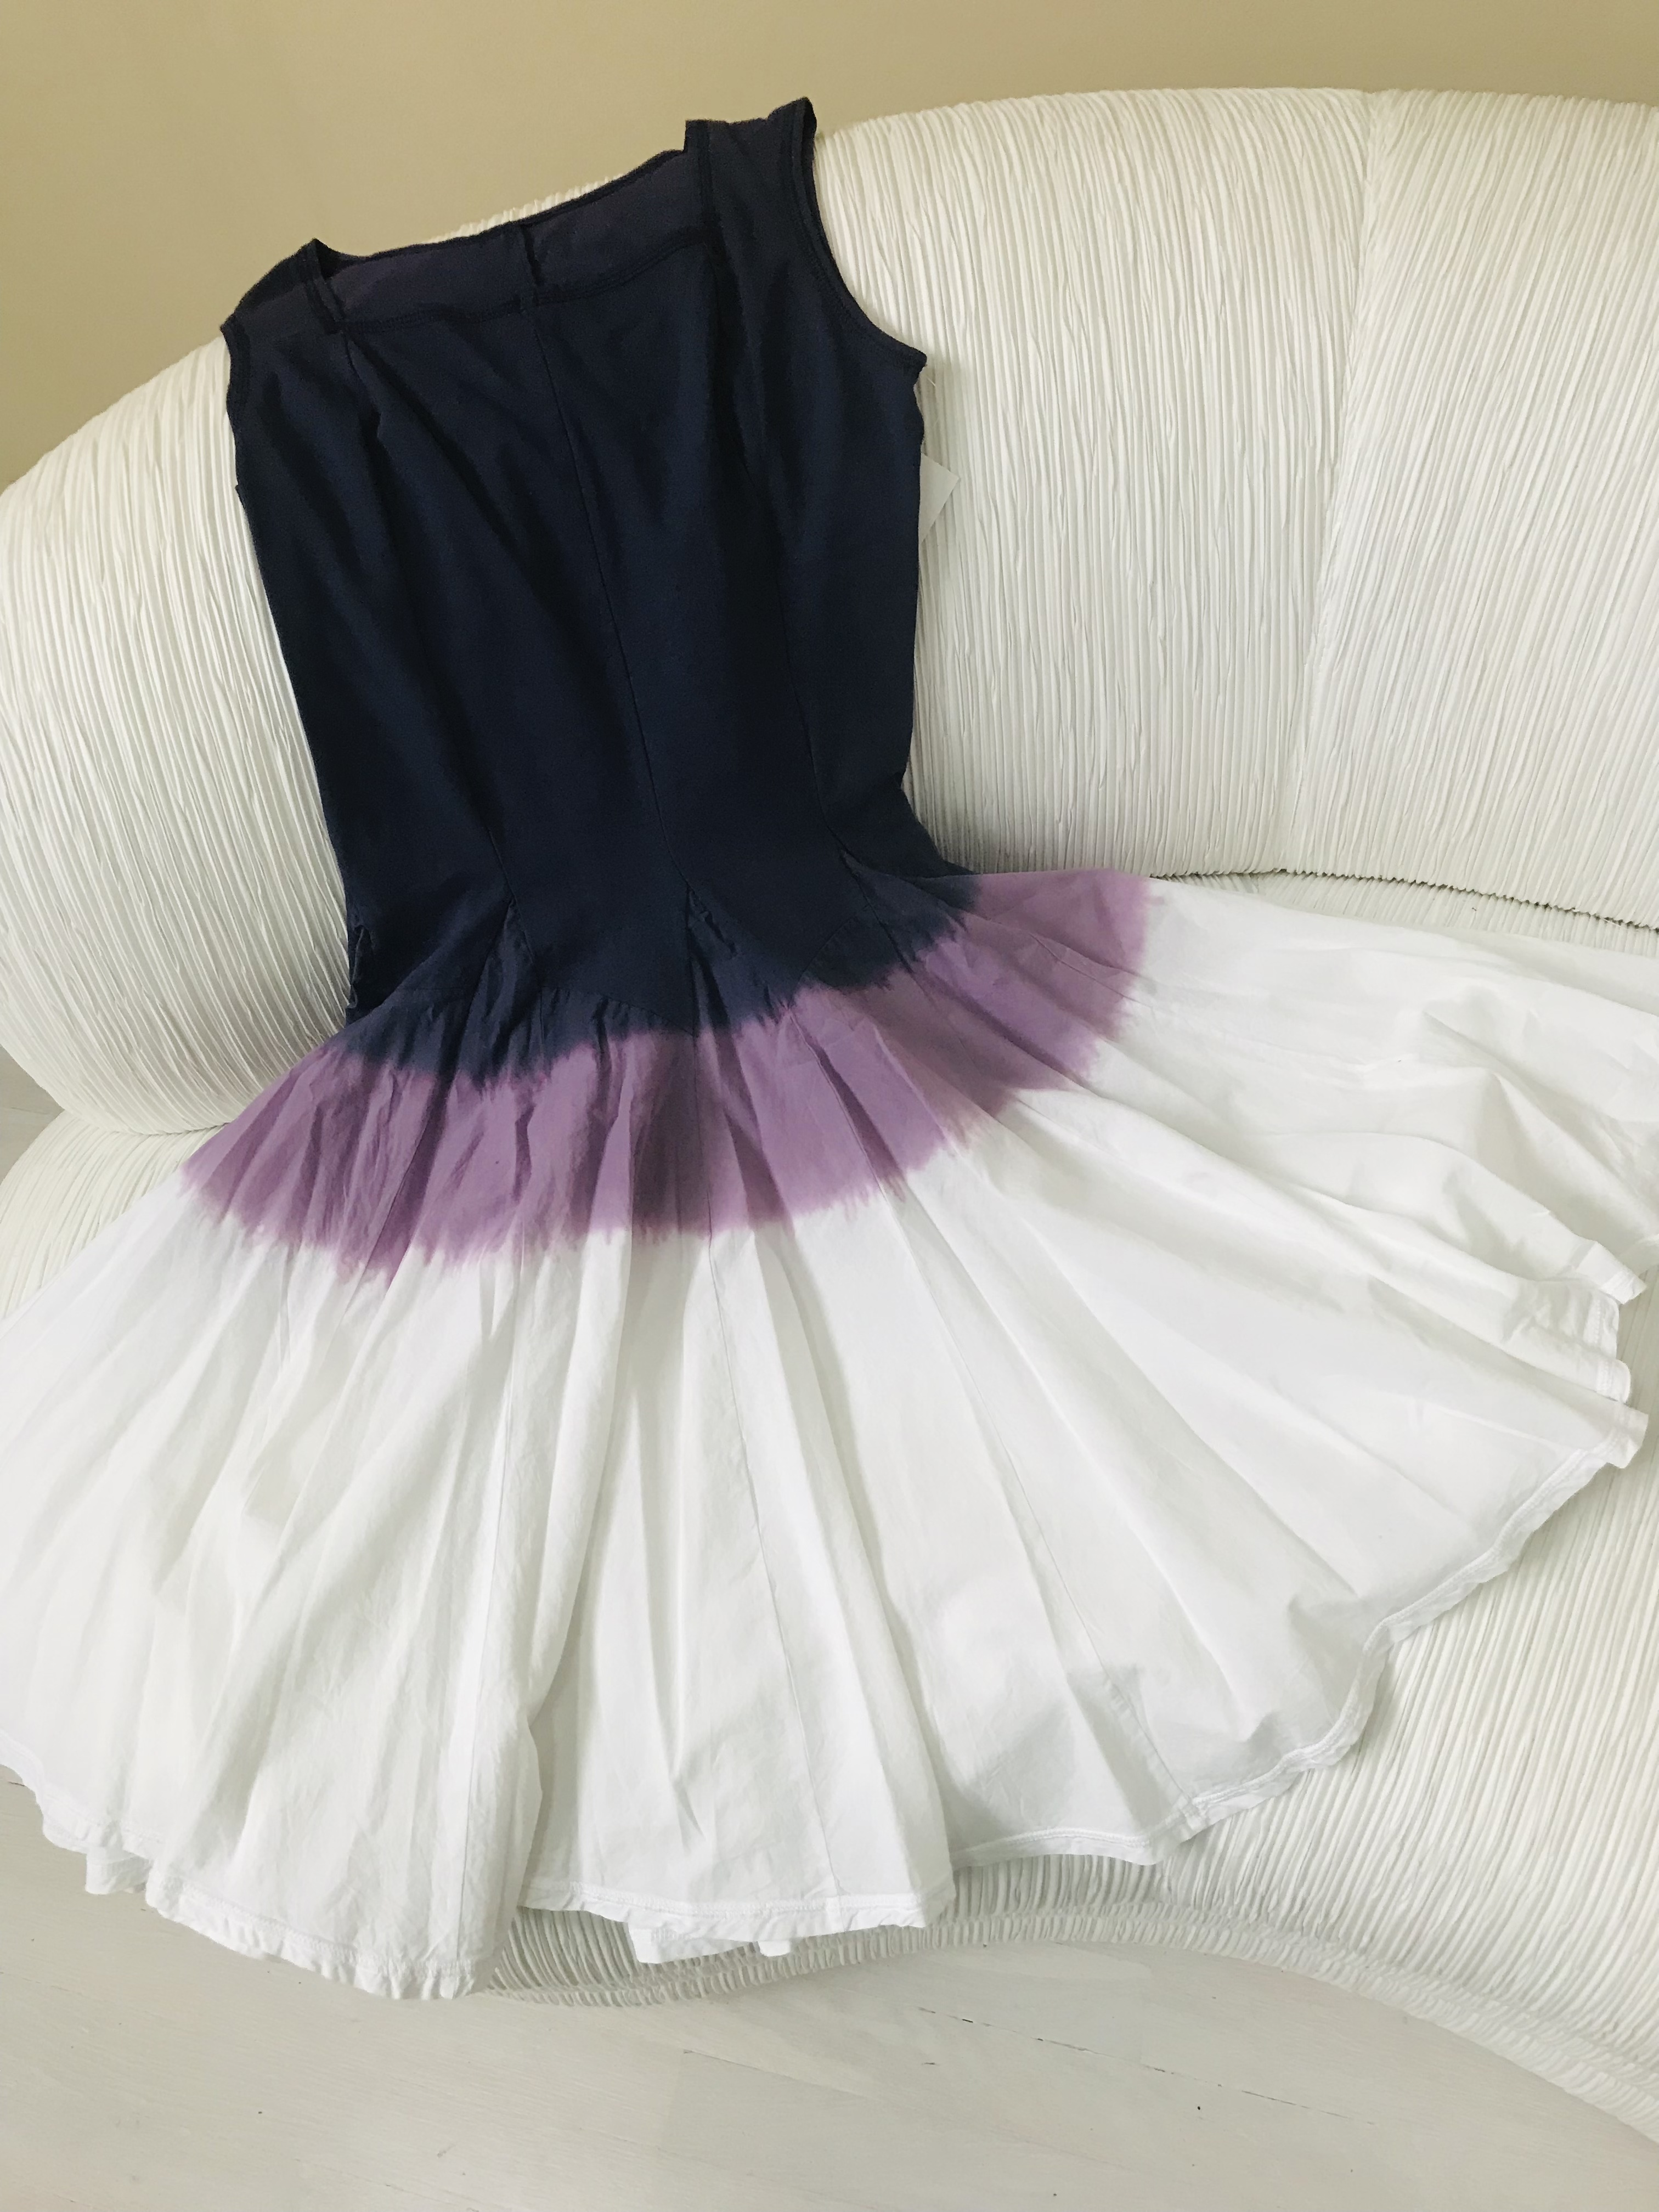 Luna Luz: Square Neck Godet Dyed Tank Dress in Iris Ombre (Ships Immed, 2 Left!) LL_5533_IRIS_OMBRE